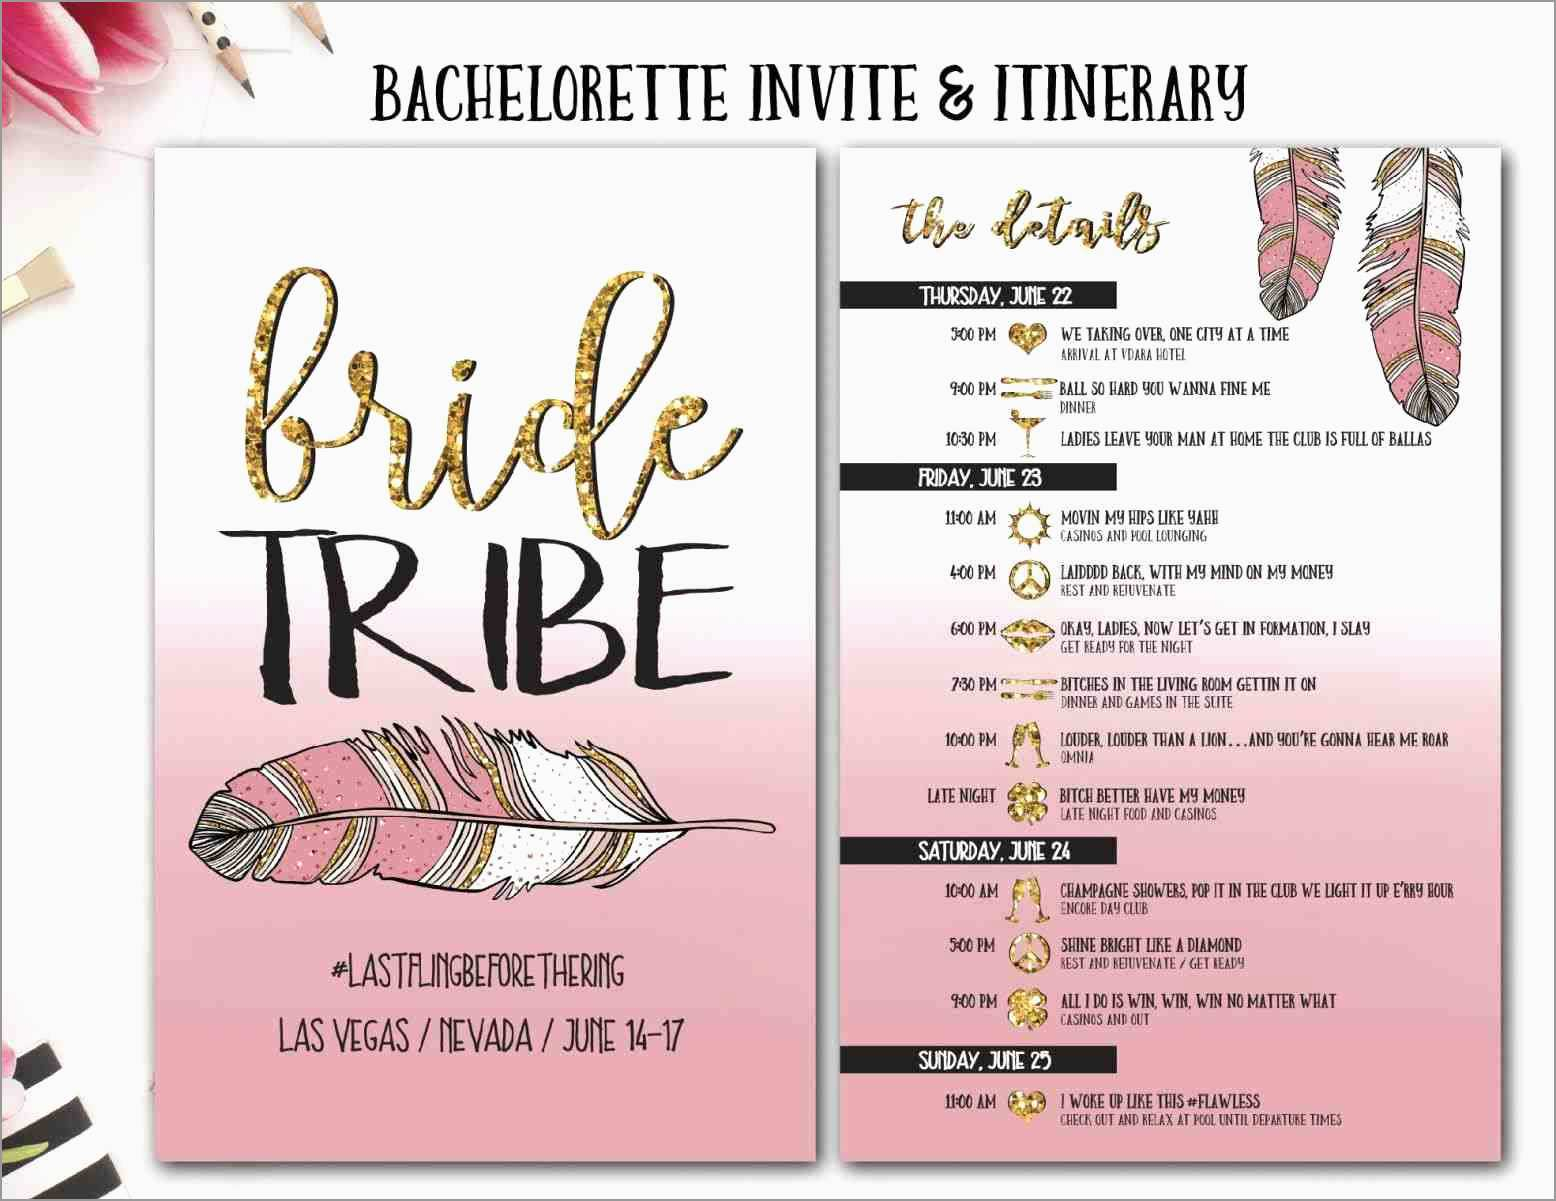 Bachelorette Itinerary Template Free Pretty Bachelorette Itinerary within Bachelorett Fill In Blank Templets